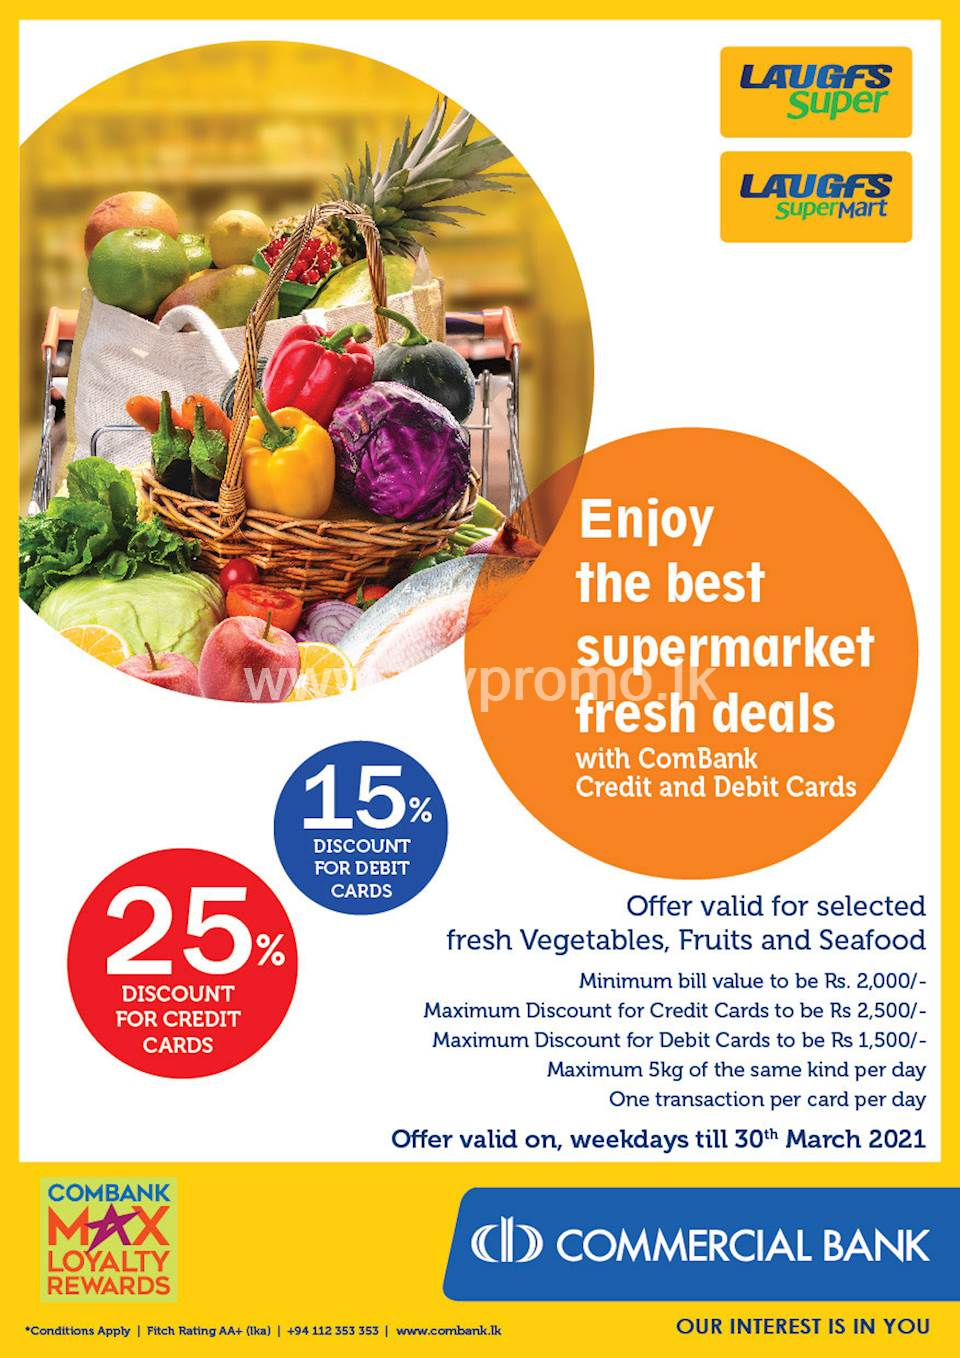 Enjoy up to 25% Discount for ComBank Credit and Debit Card at LAUGHFS Supermarket